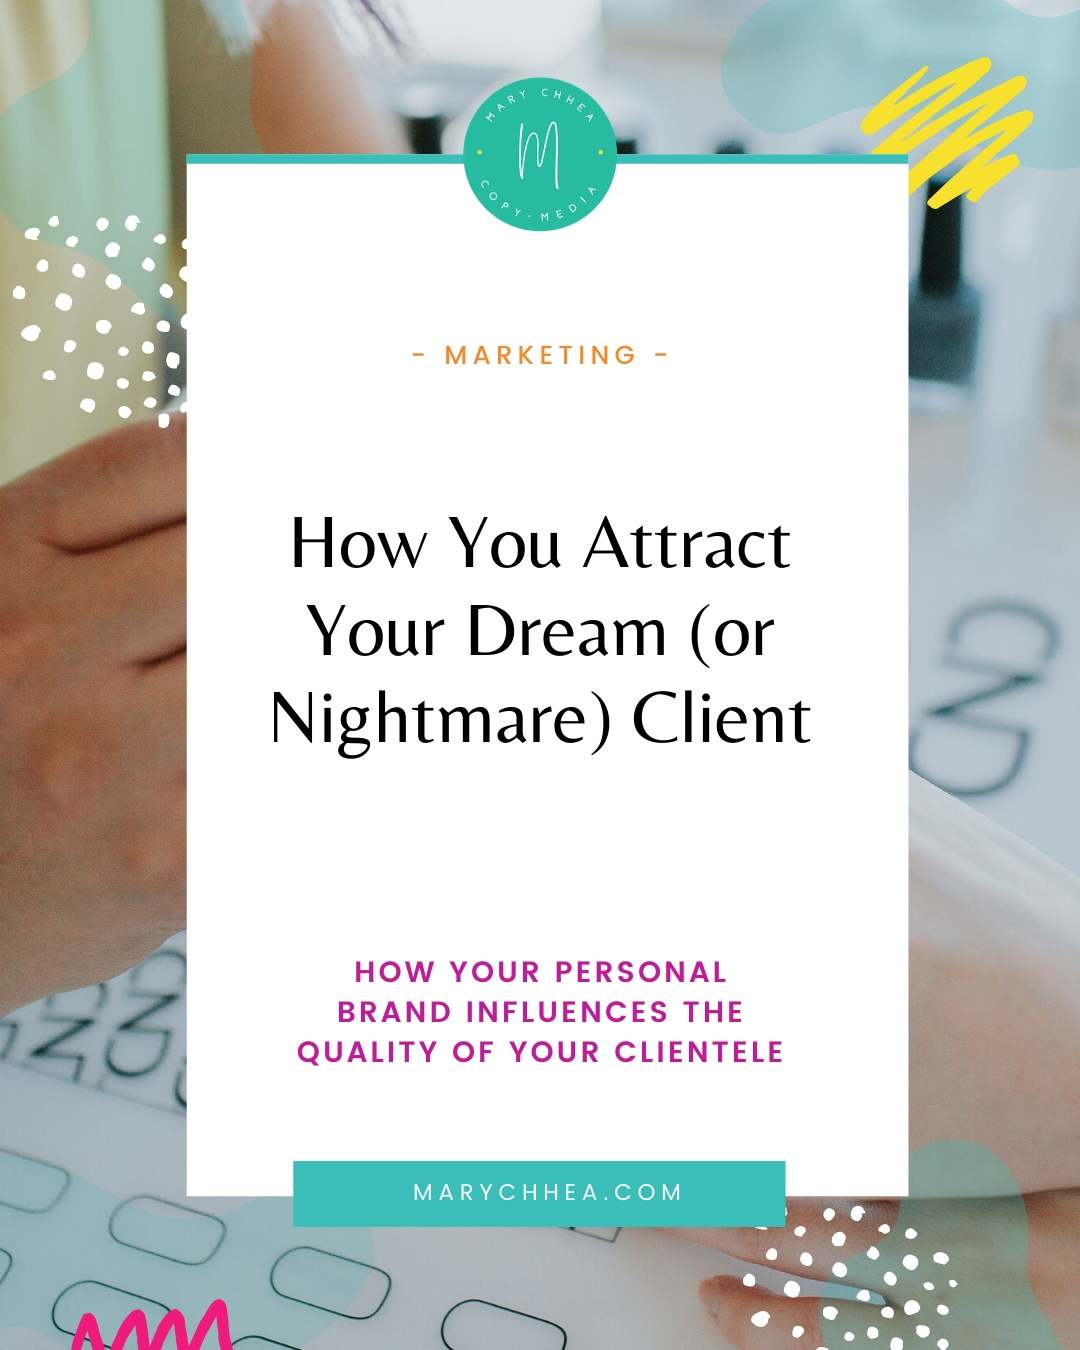 Blog Post title reads: How You Attract your dream or nightmare client. How you personal brand influences the quality of your clientele